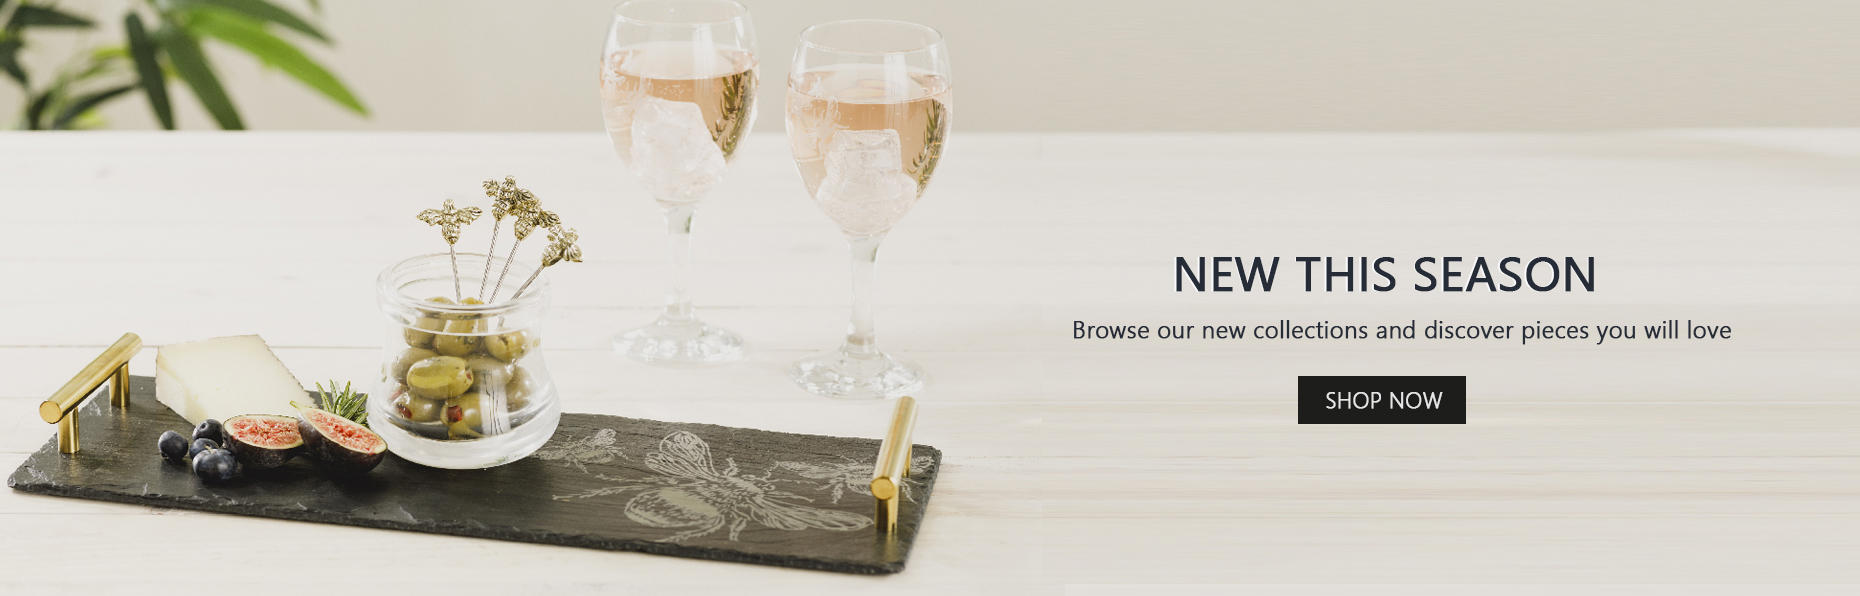 New Homeware Gifts